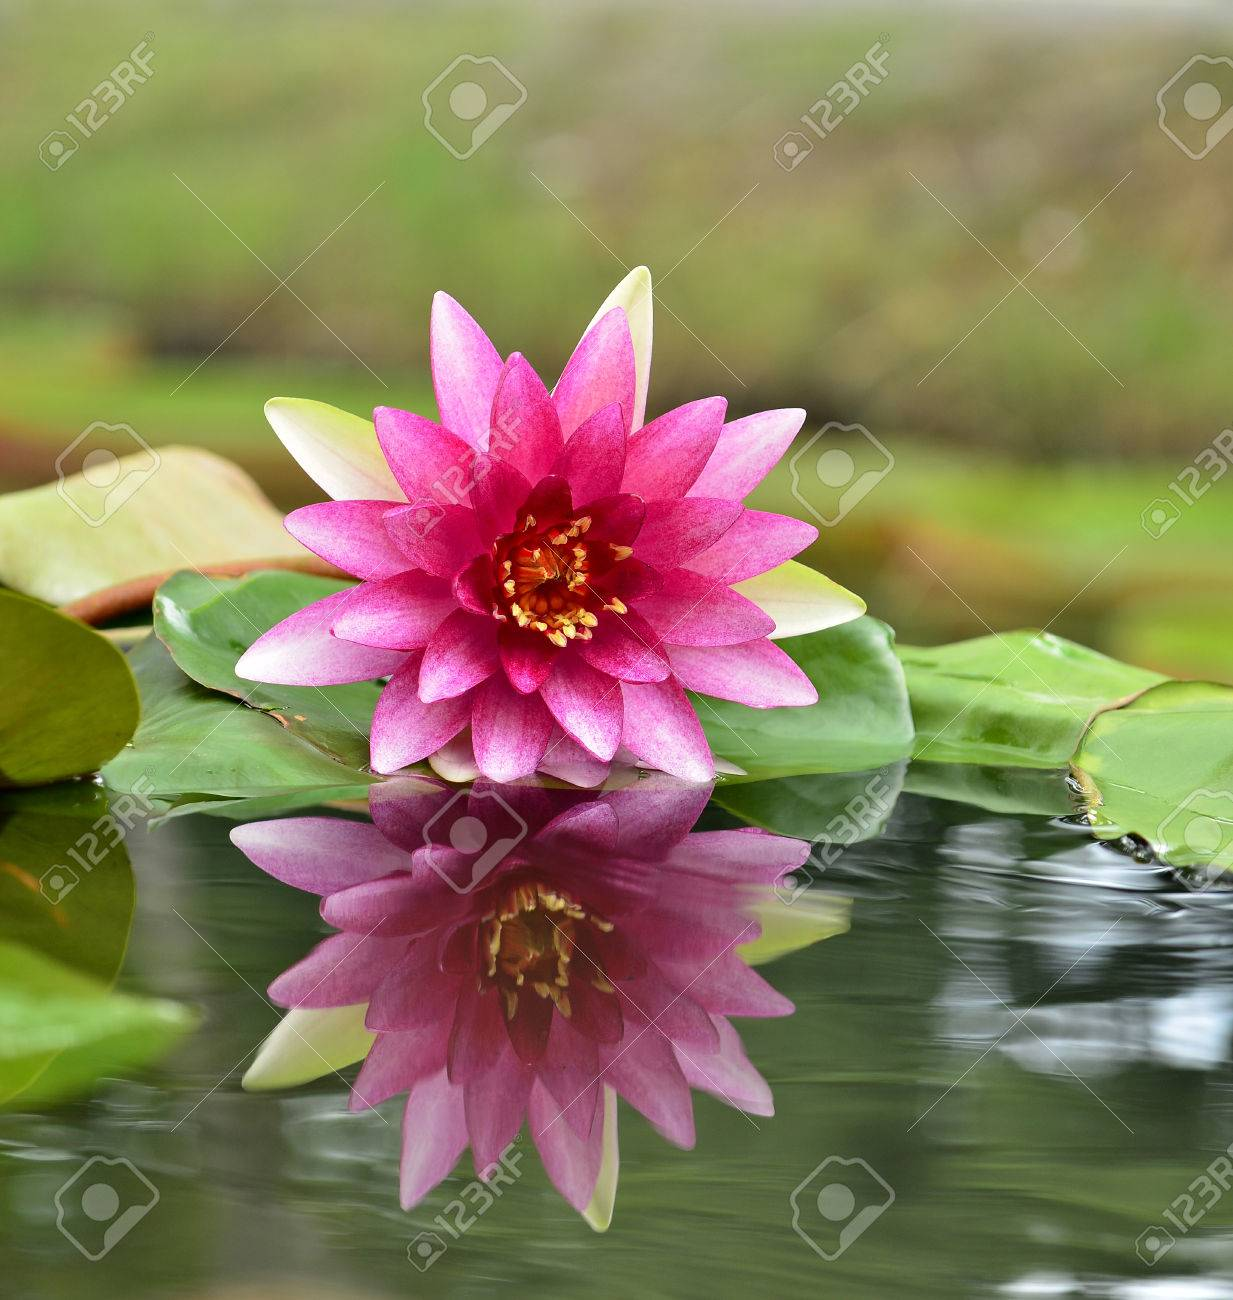 Pink and red lotus flower or water lily with perfect reflection pink and red lotus flower or water lily with perfect reflection in water stock photo mightylinksfo